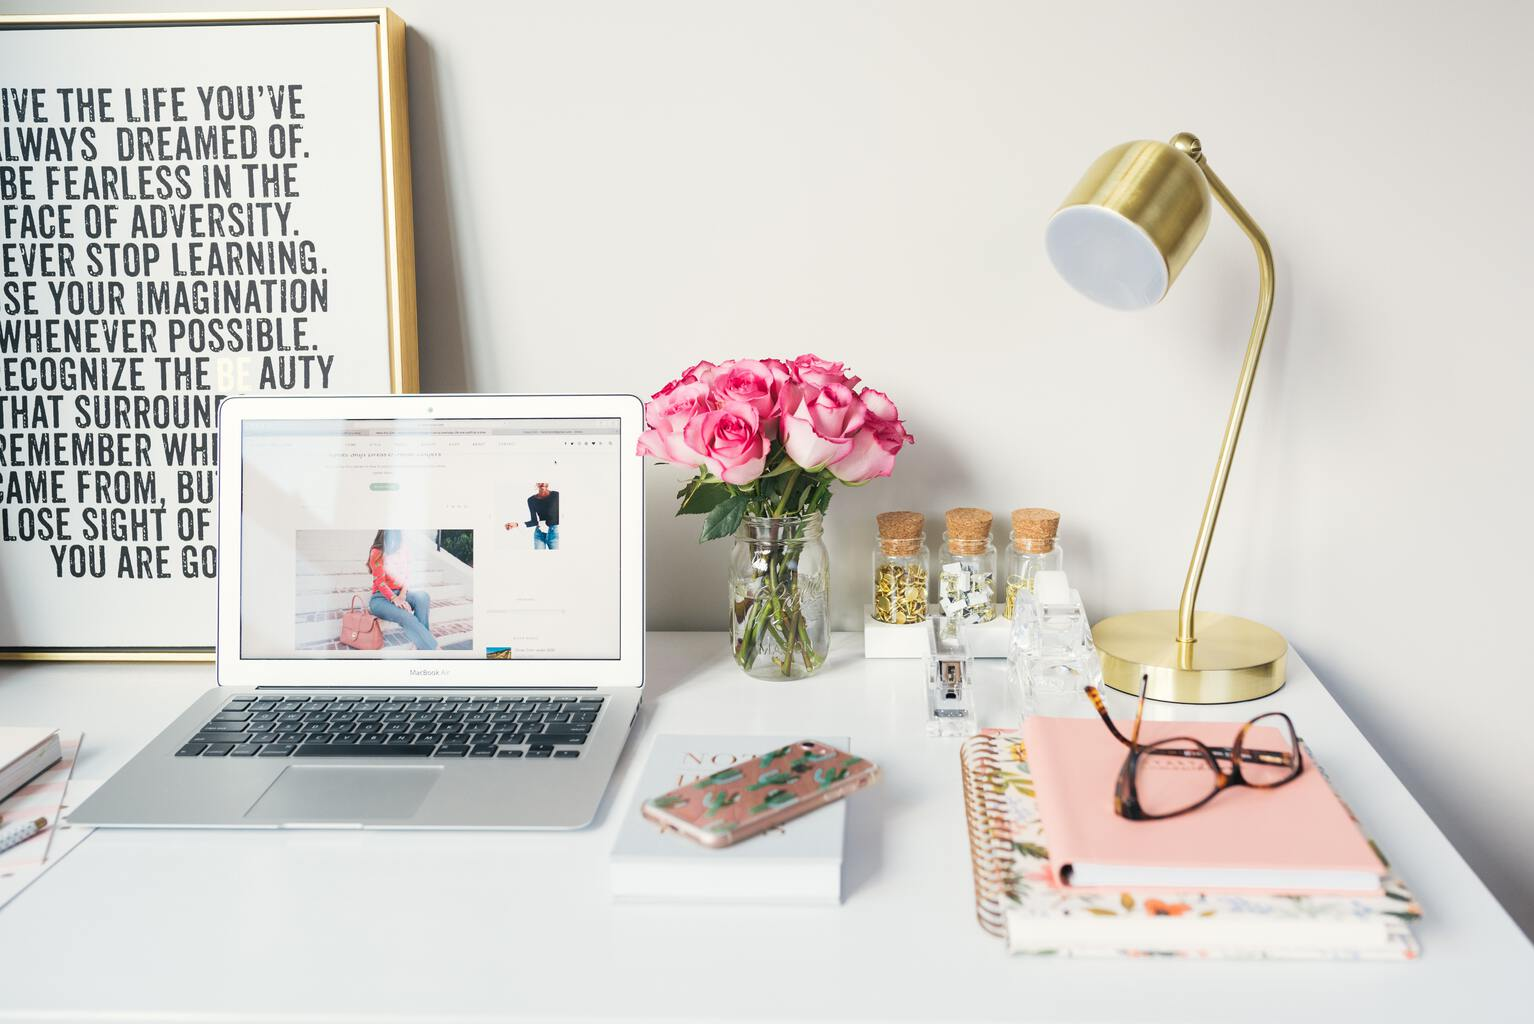 Missing Pinterest Image Options To Consider Header Image Of Desk With Laptop, Pink Roses & Stationary